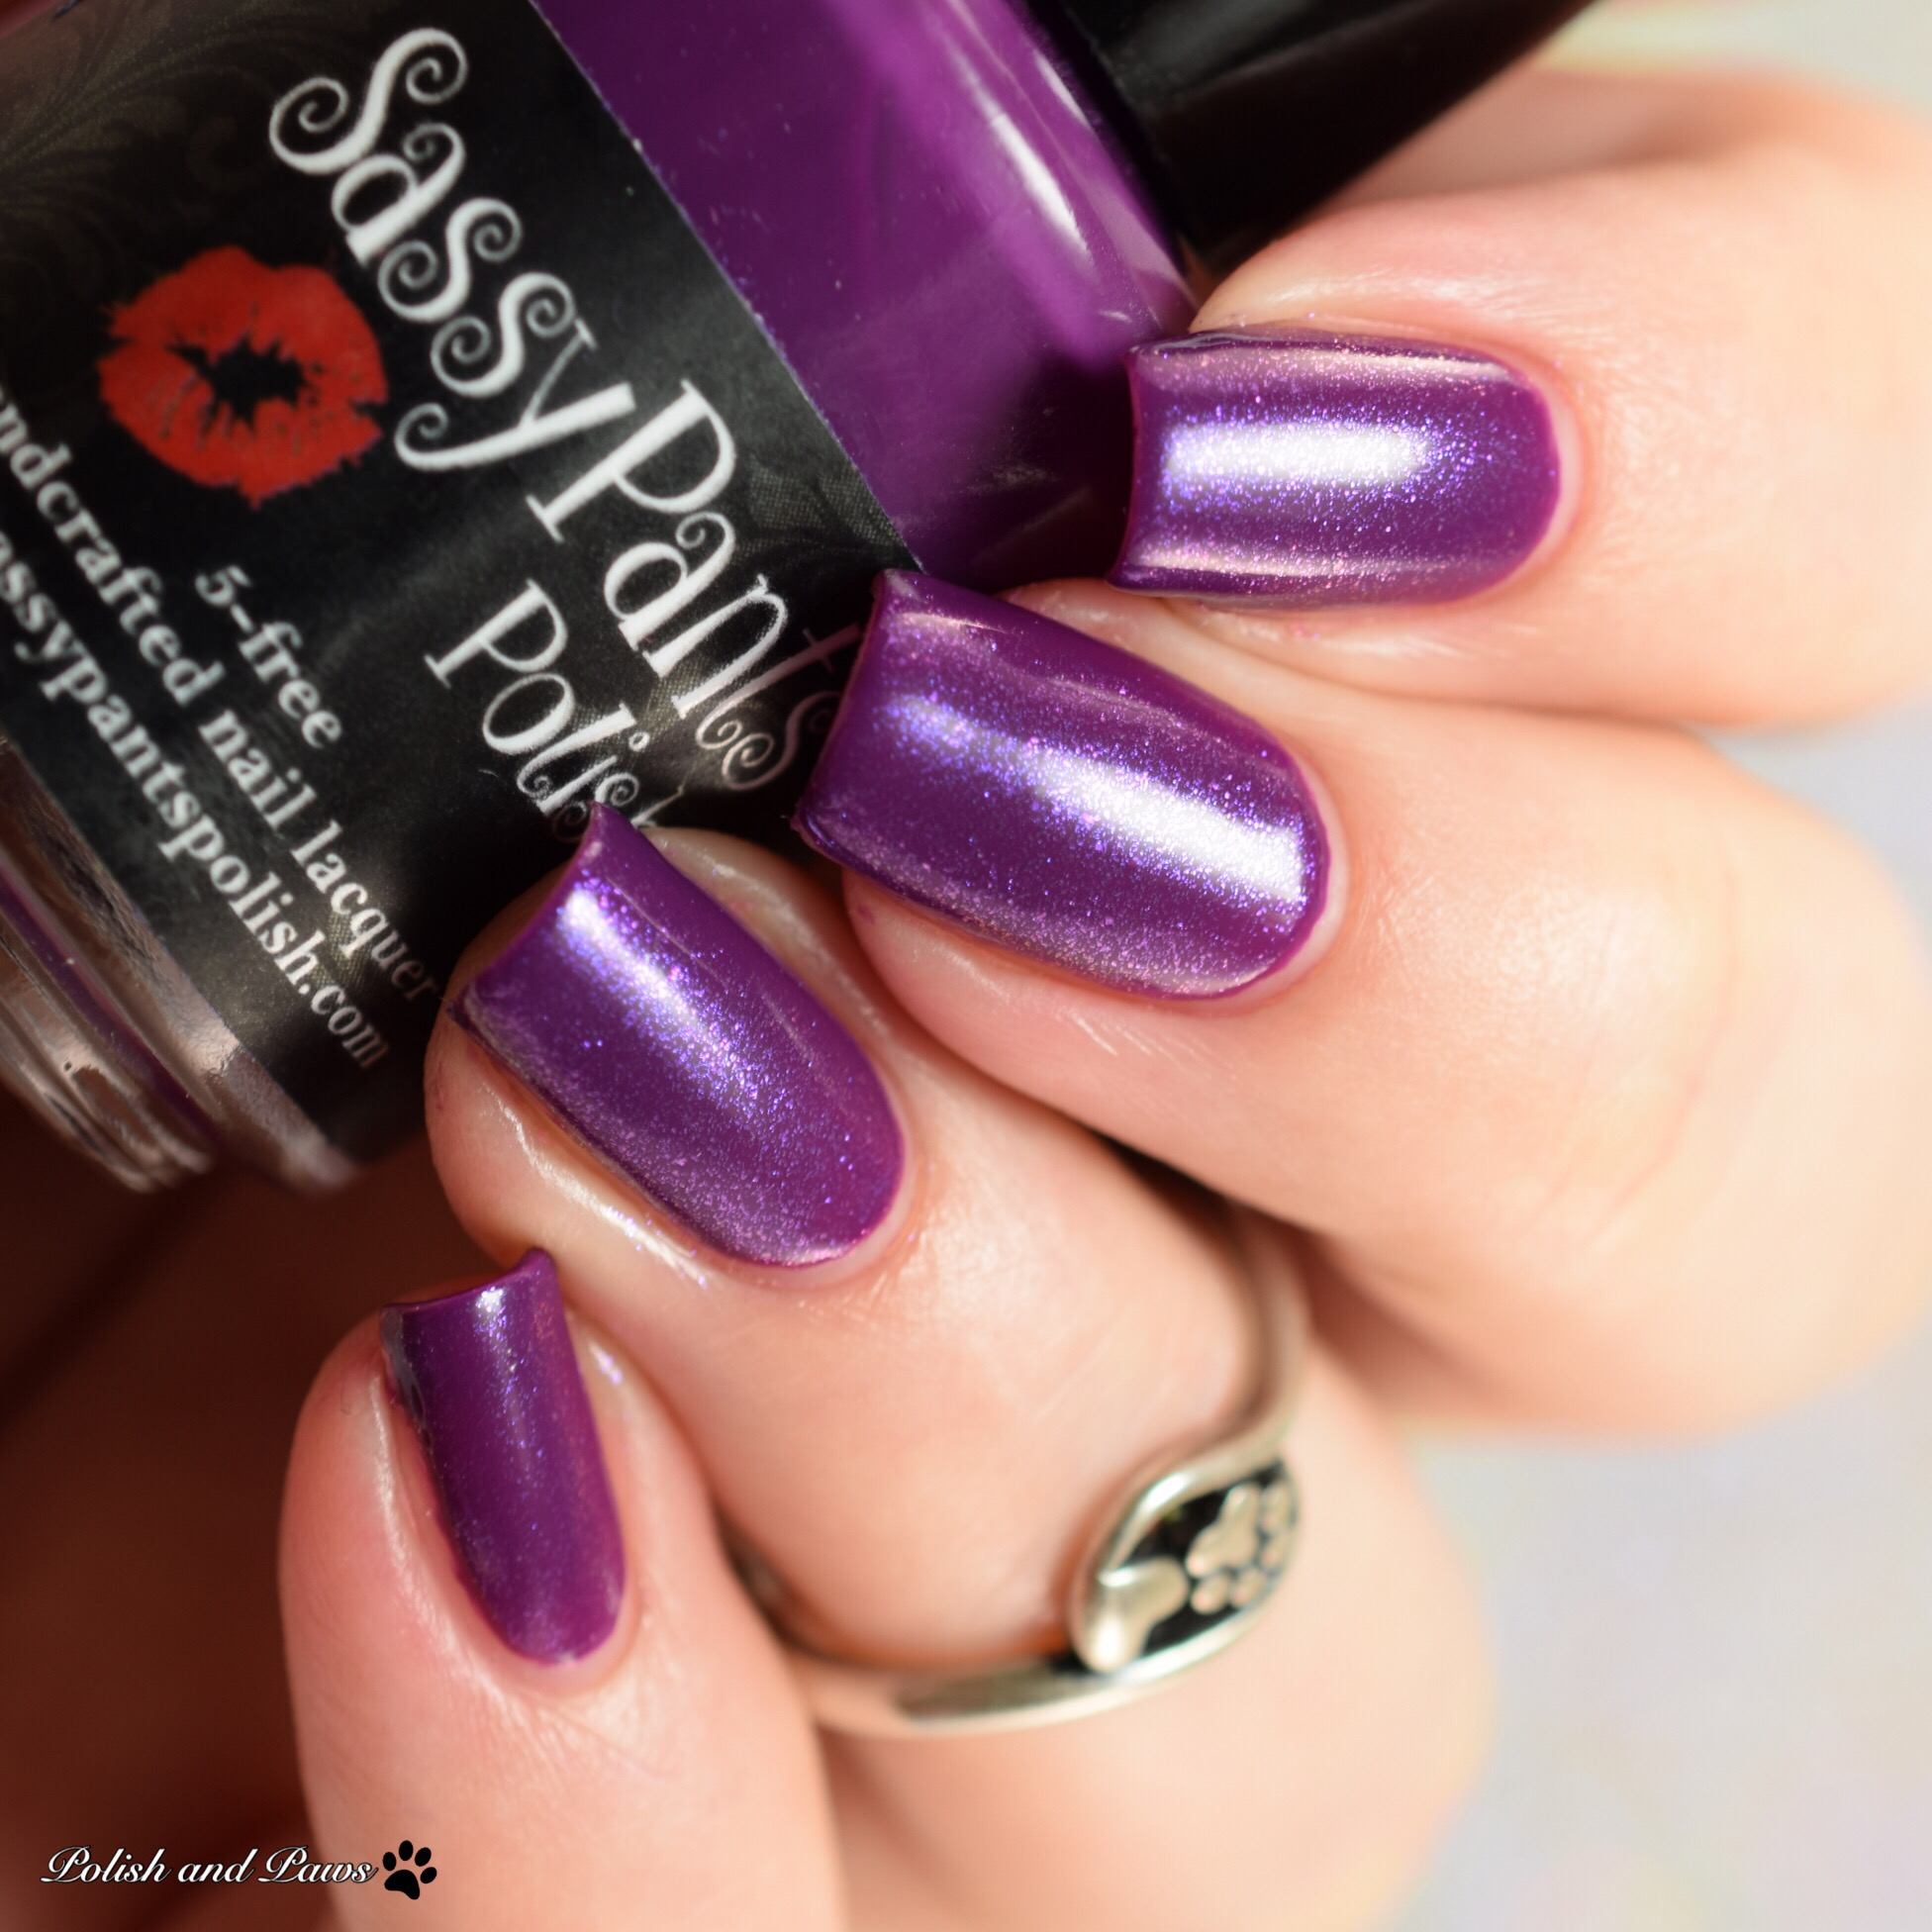 Sassy Pants Polish Forever Yours layered over Kiss & Tell